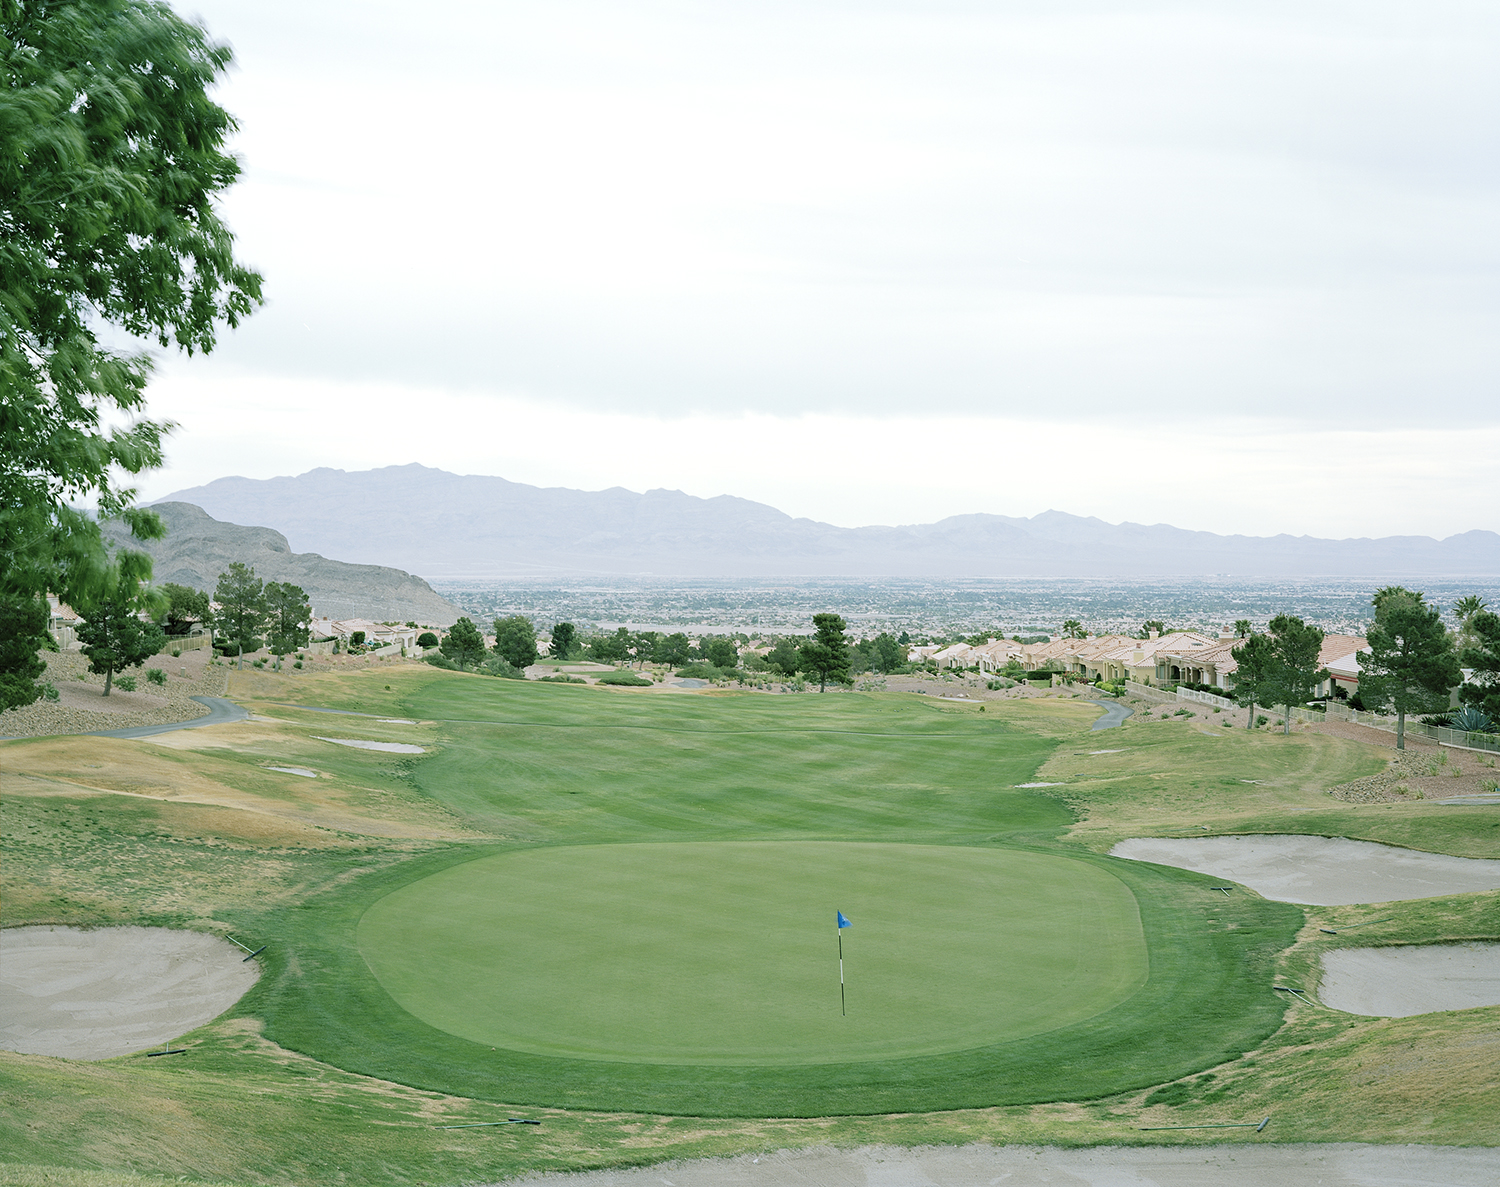 Highland Falls Golf Club, Sun City Blvd, Summerlin, Nevada, USA.